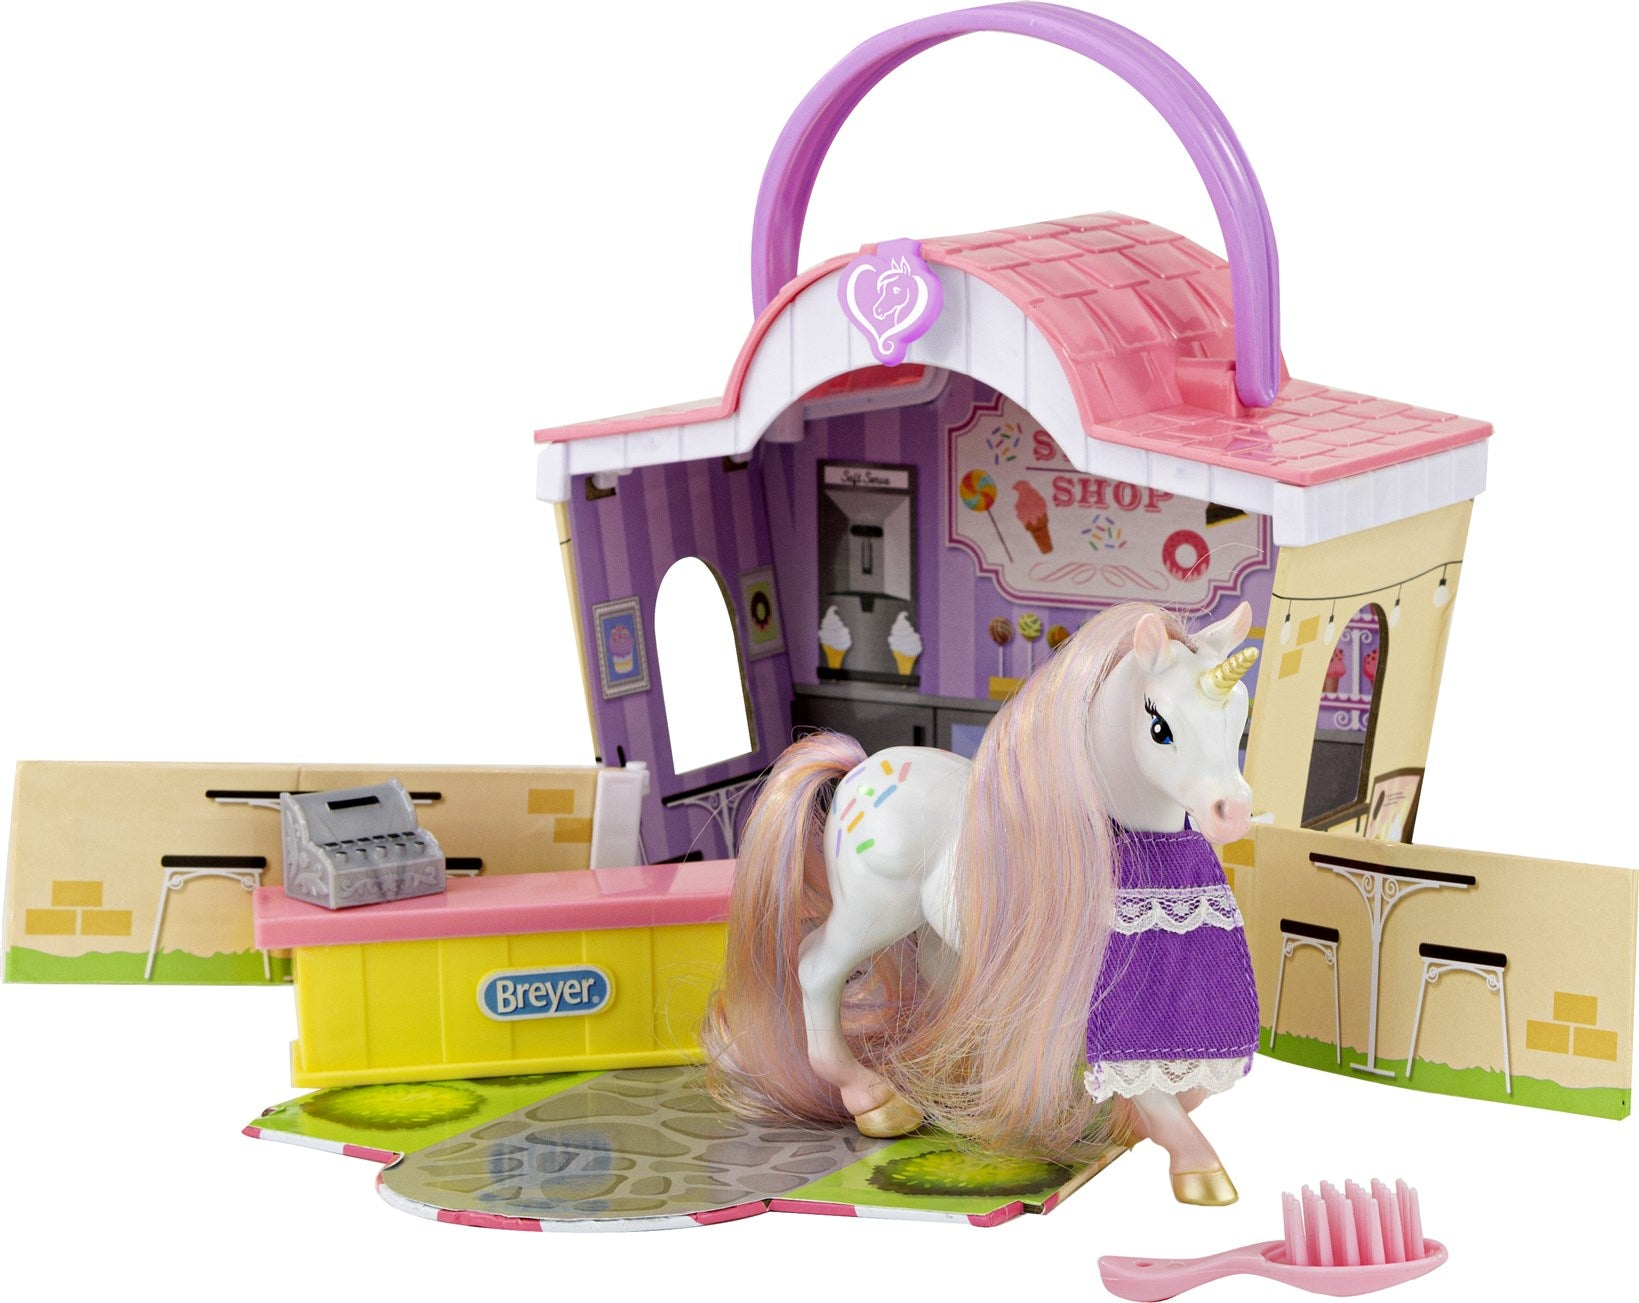 Breyer Mane Beauty Li'l Beauties Playset - Sprinkles Sweet Shop